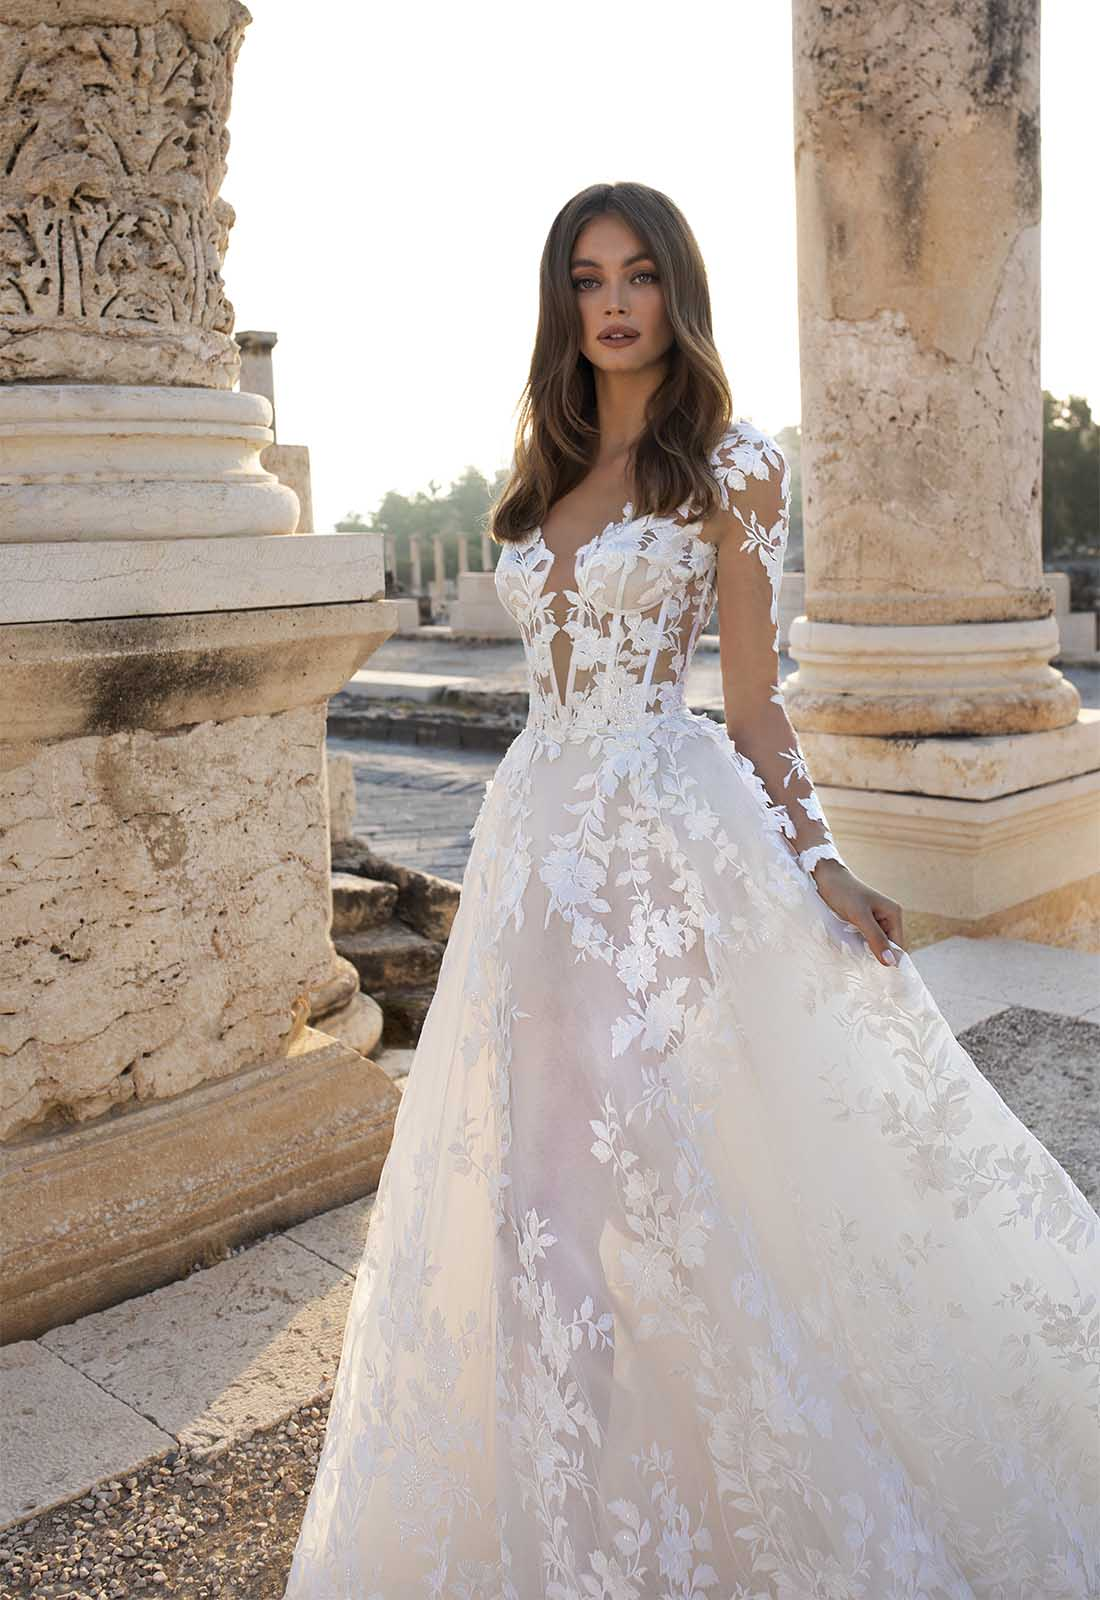 Pnina Tornai, 12 Insanely Stylish Wedding Dresses for your Destination Wedding for Destination Wedding network Adriana Weddings